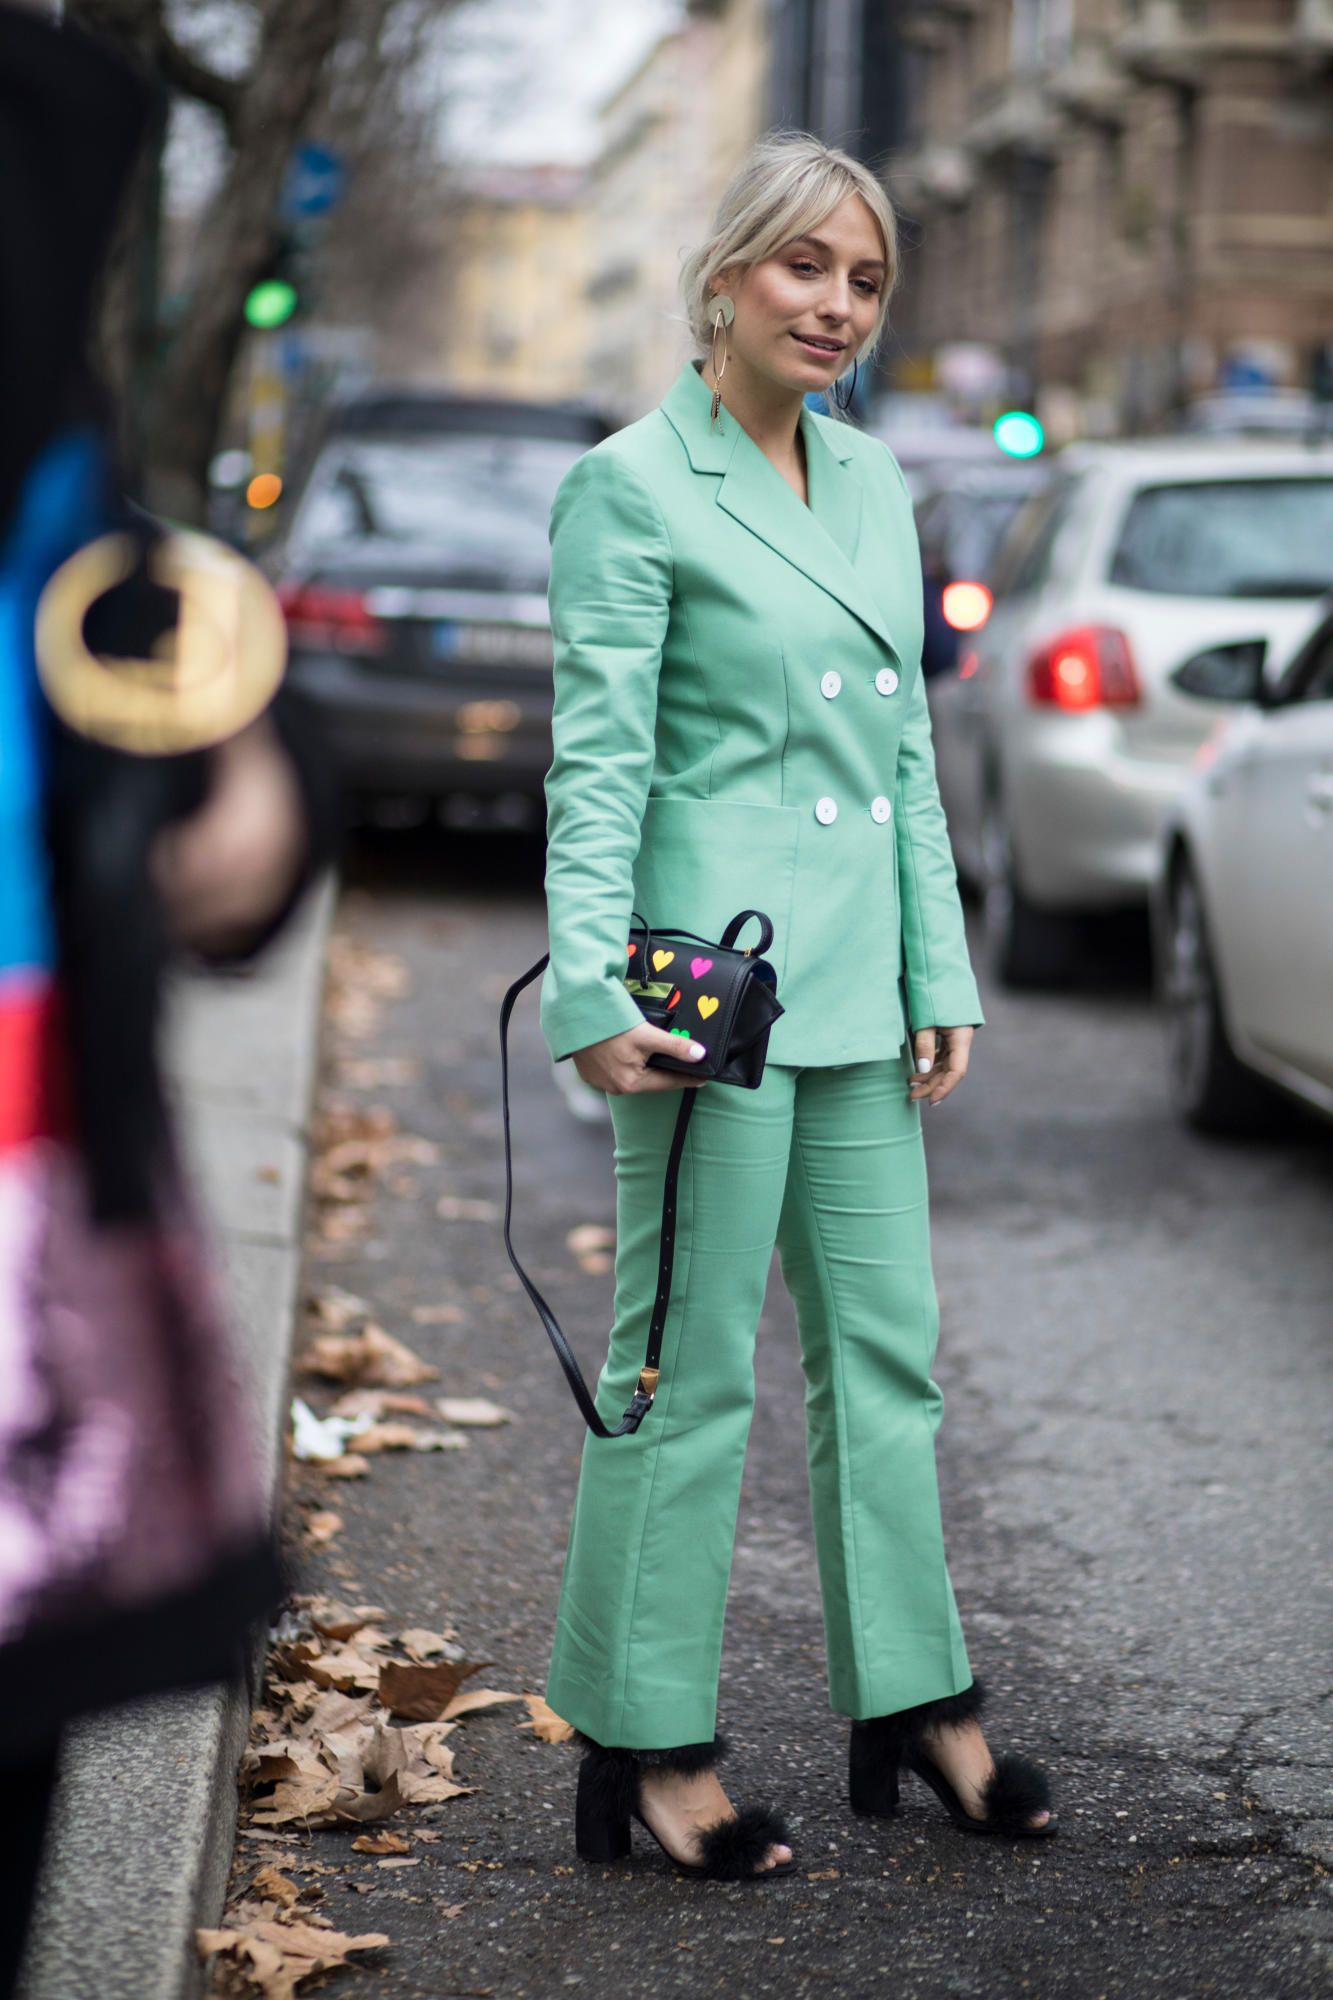 Our favorite street style looks from outside the shows over the weekend.